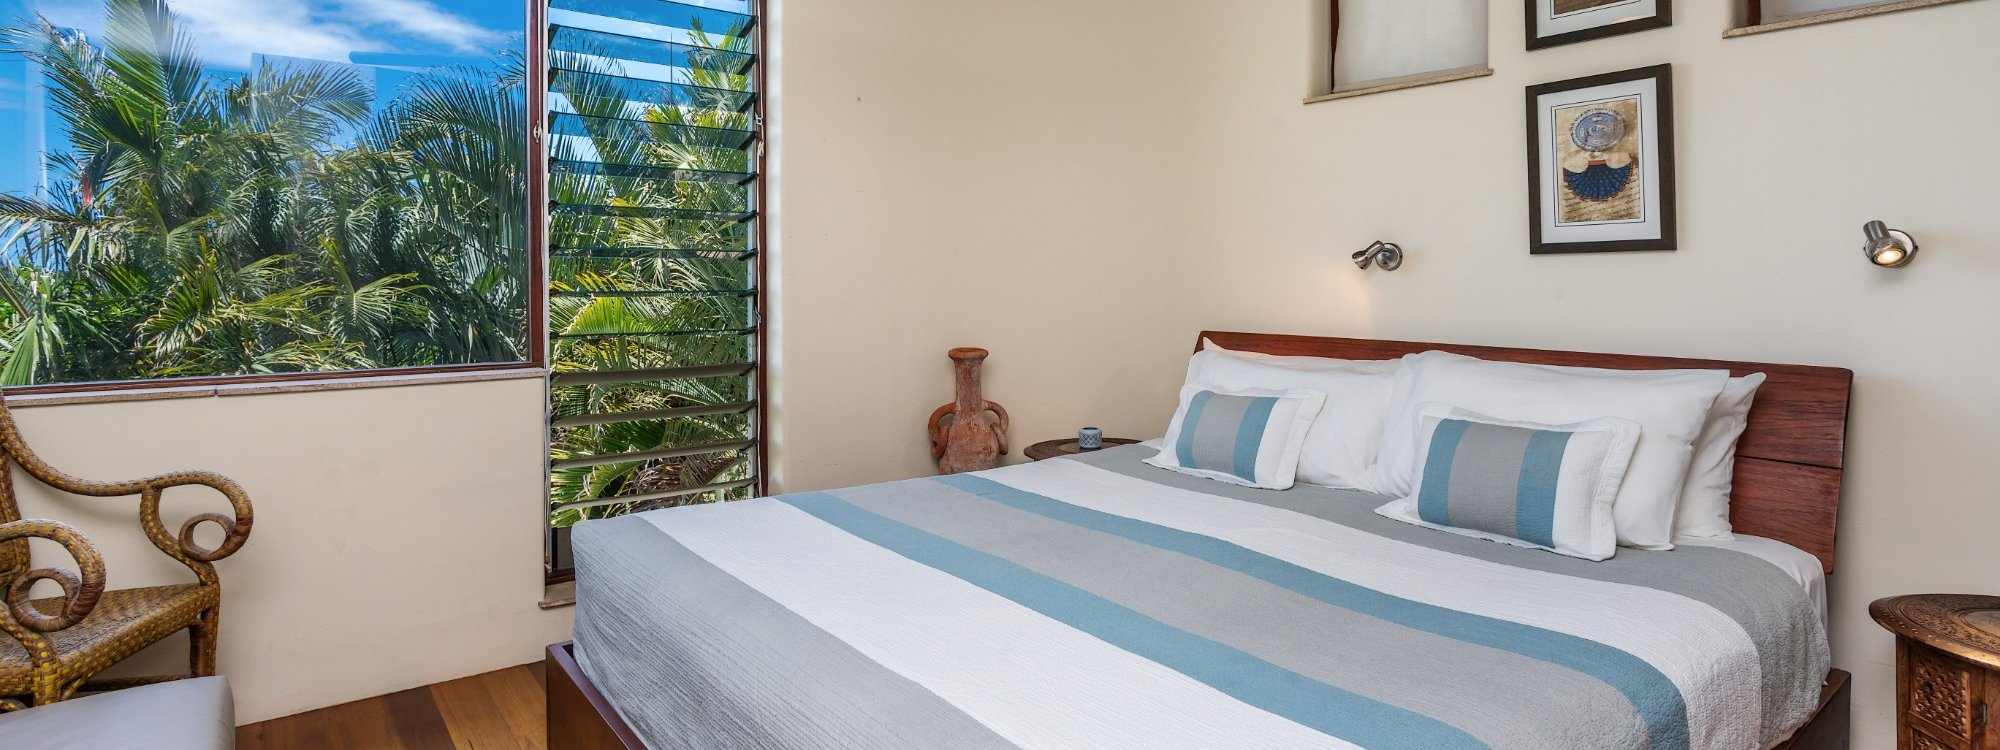 Wategos Retreats Apartment - Wategos Beach - Byron Bay - Apartment Bedroom